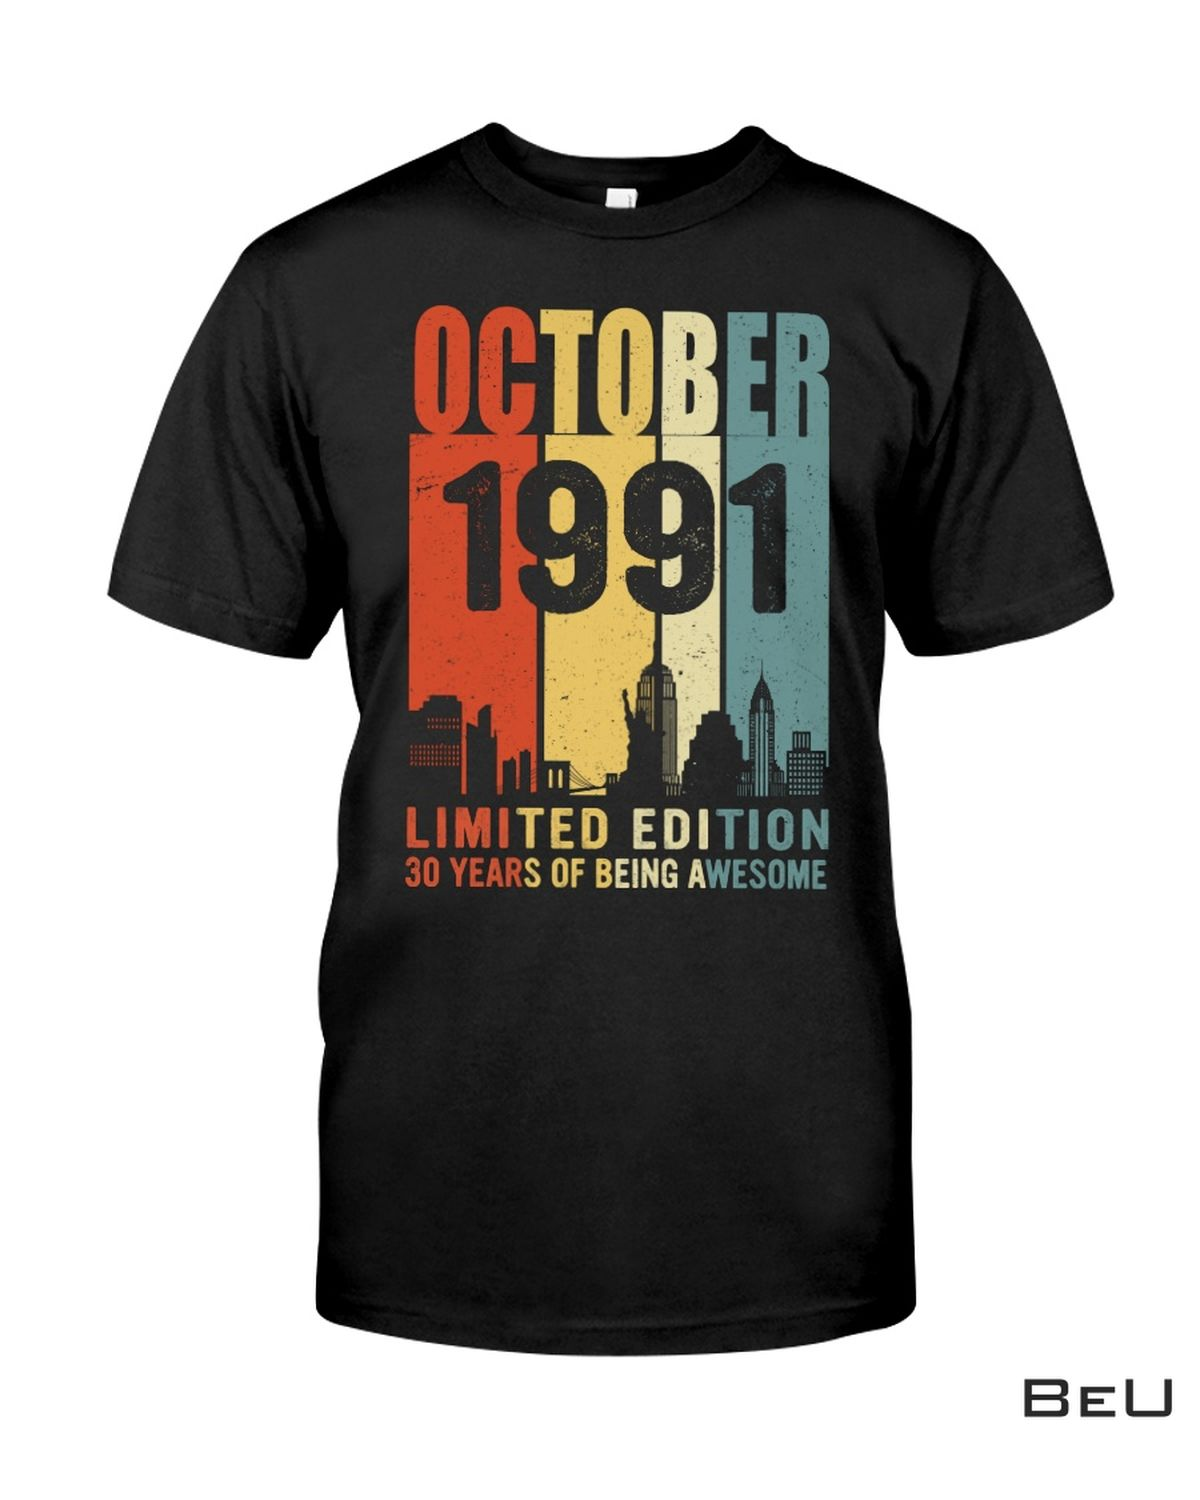 October 1991 Limited Edition Shirt